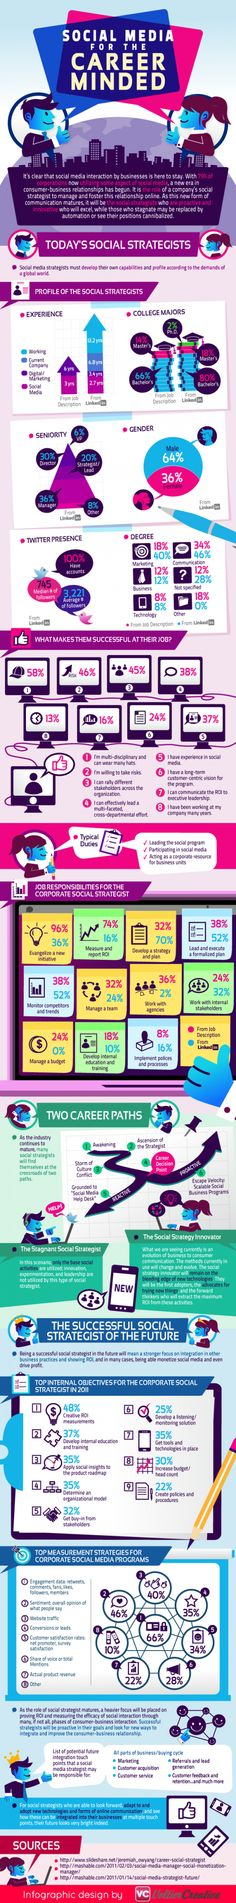 Social Media for the Career Minded Infographic